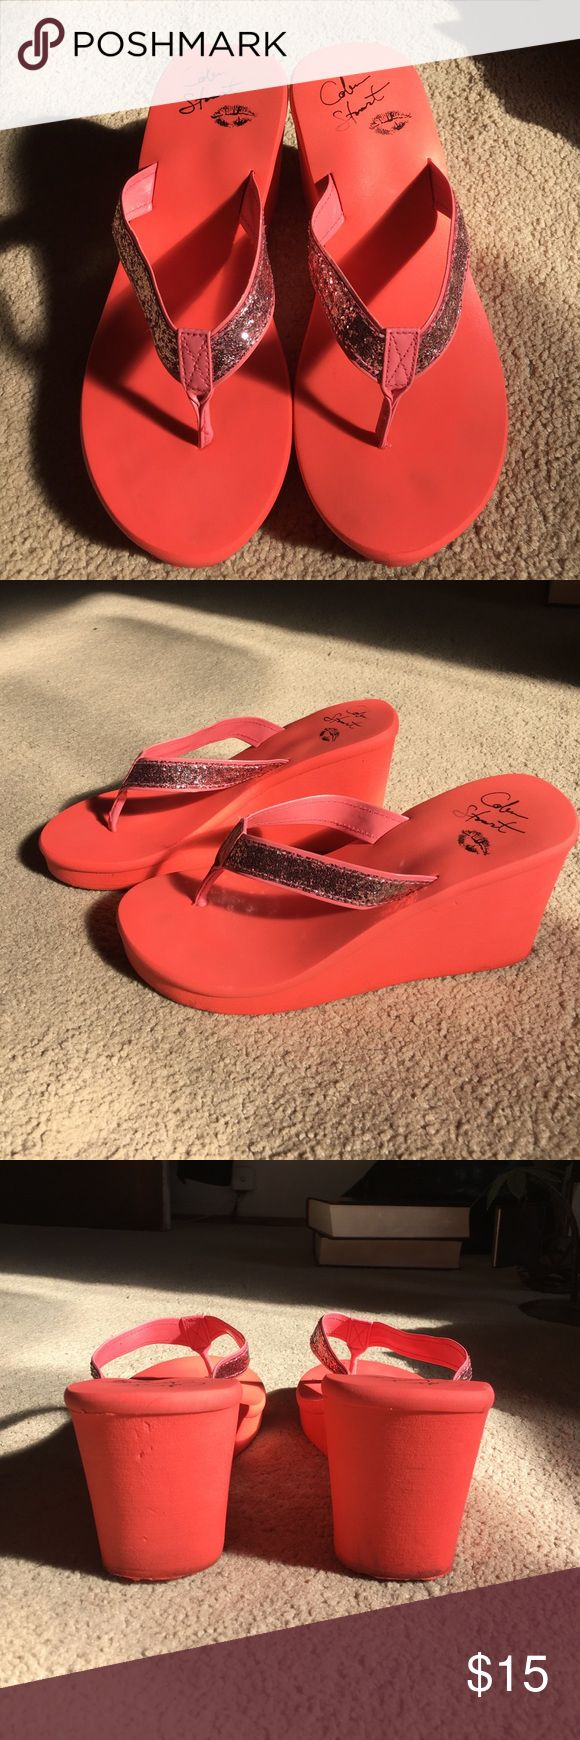 Colin Stuart wedge flip flops Colin Stuart wedge flip flops 3 1/2 in. Height. Make me an offer ! Colin Stuart Shoes Sandals